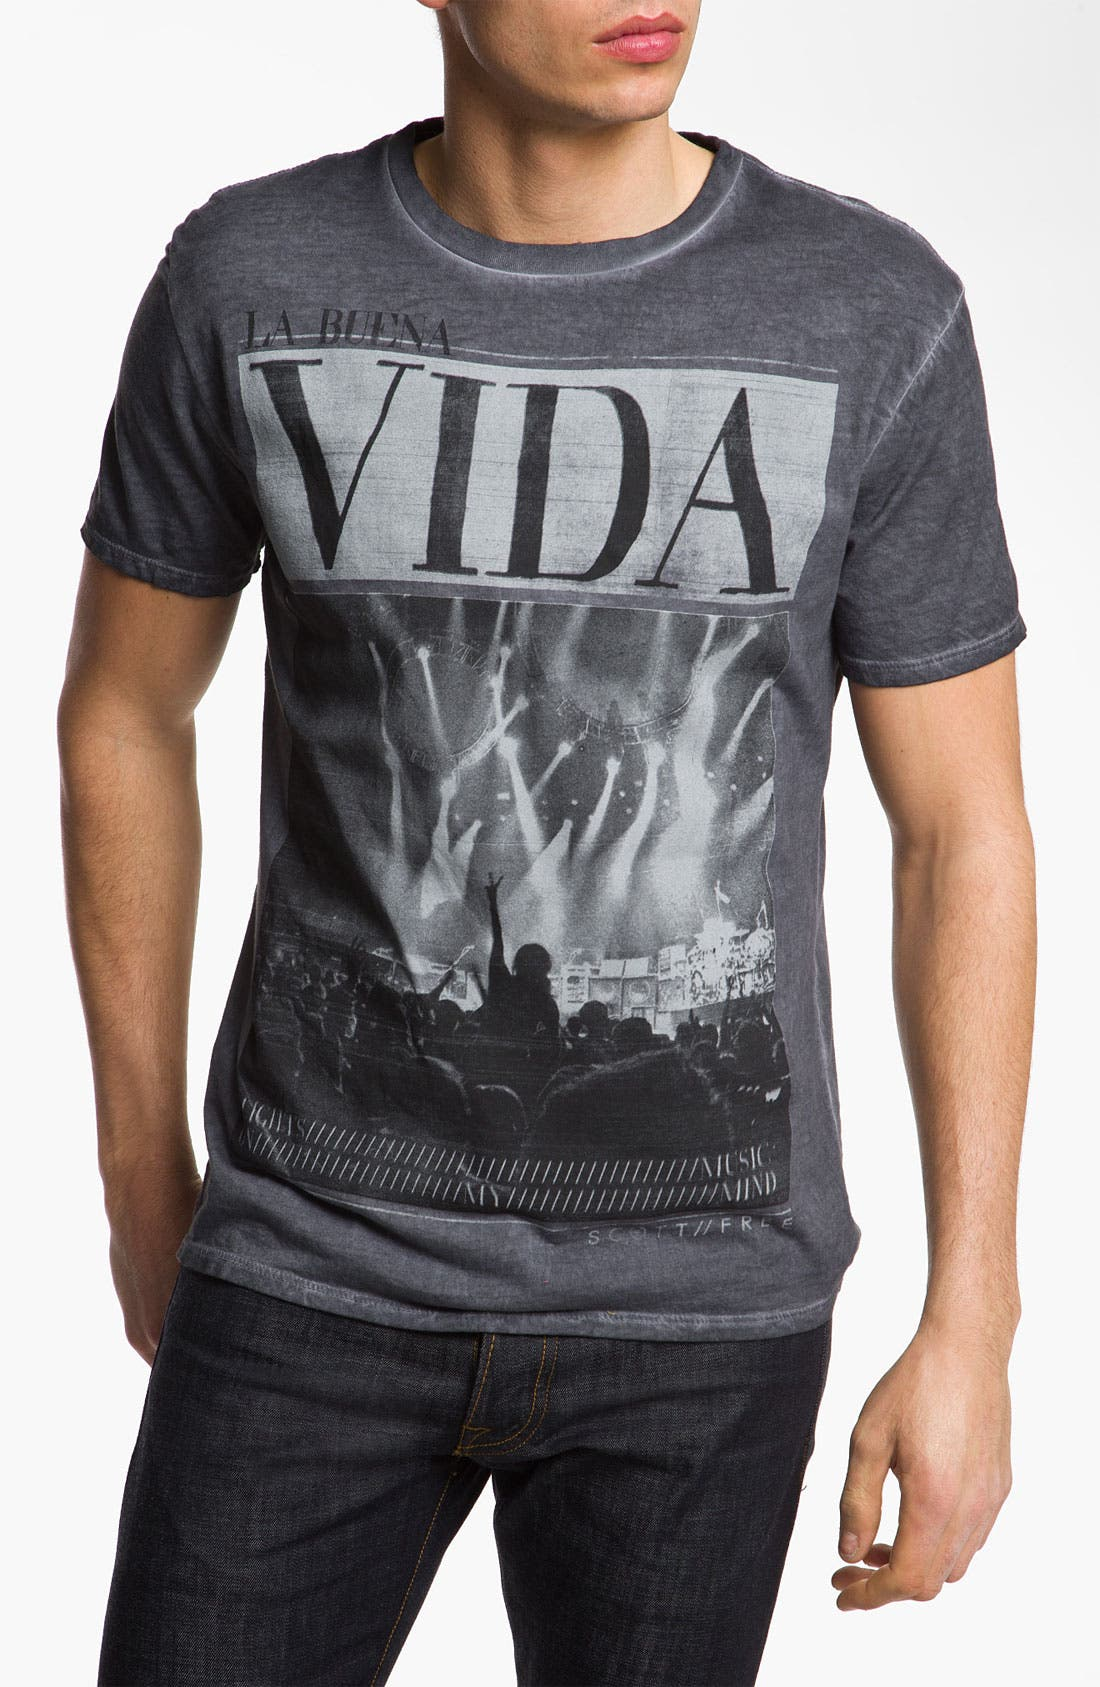 Main Image - Scott Free 'Vida' Graphic T-Shirt